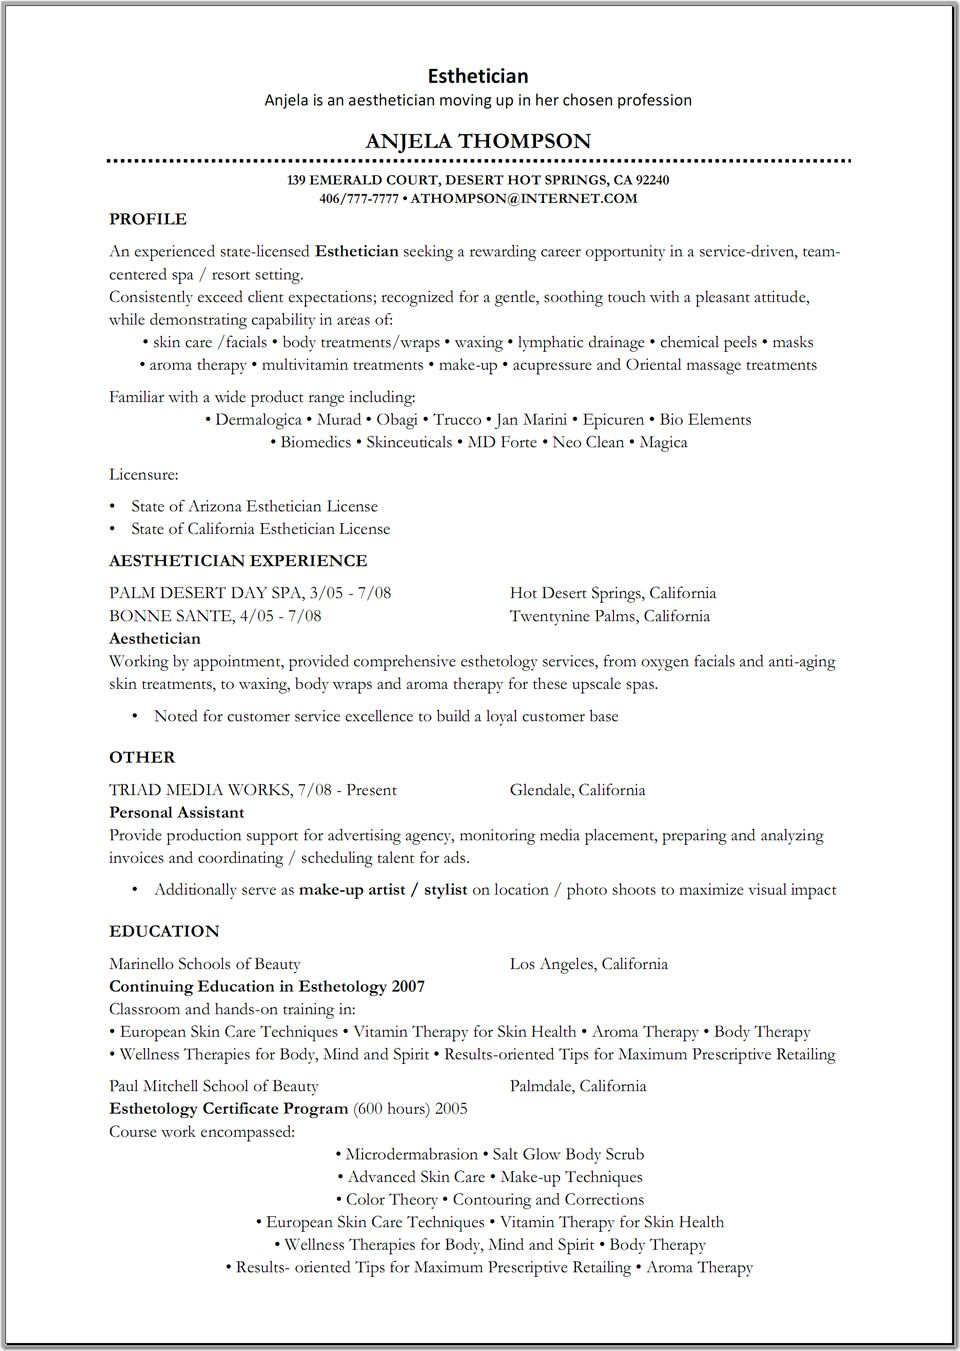 Marvelous Esthetician Resume Sample   Http://www.resumecareer.info/esthetician  Regarding Sample Esthetician Resume